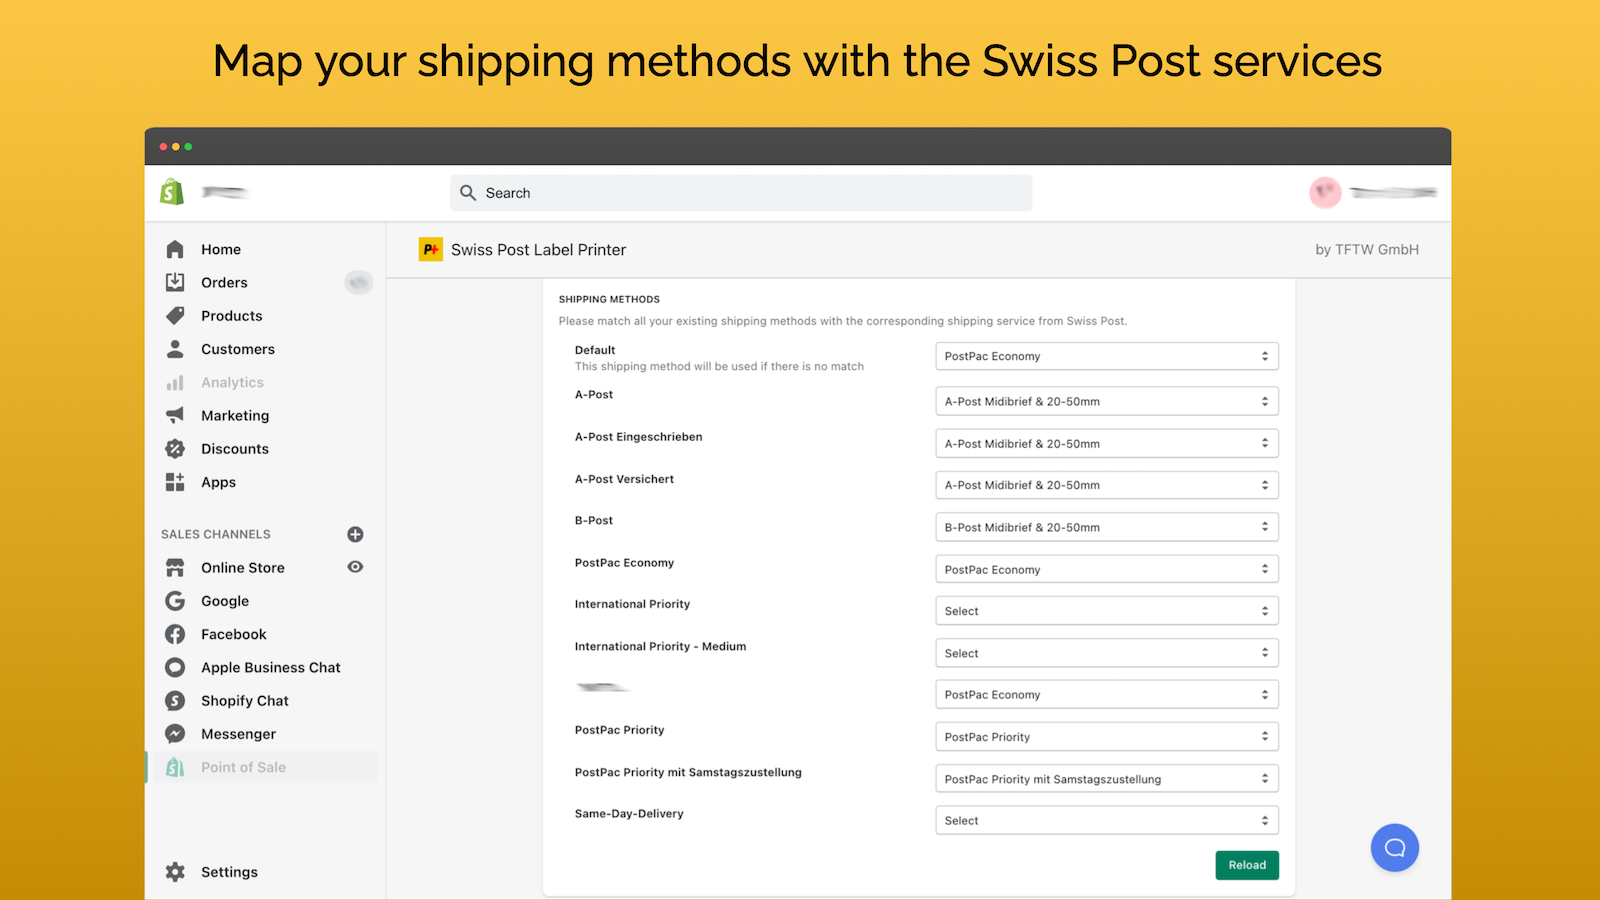 Map your shipping methods with Swiss Post services